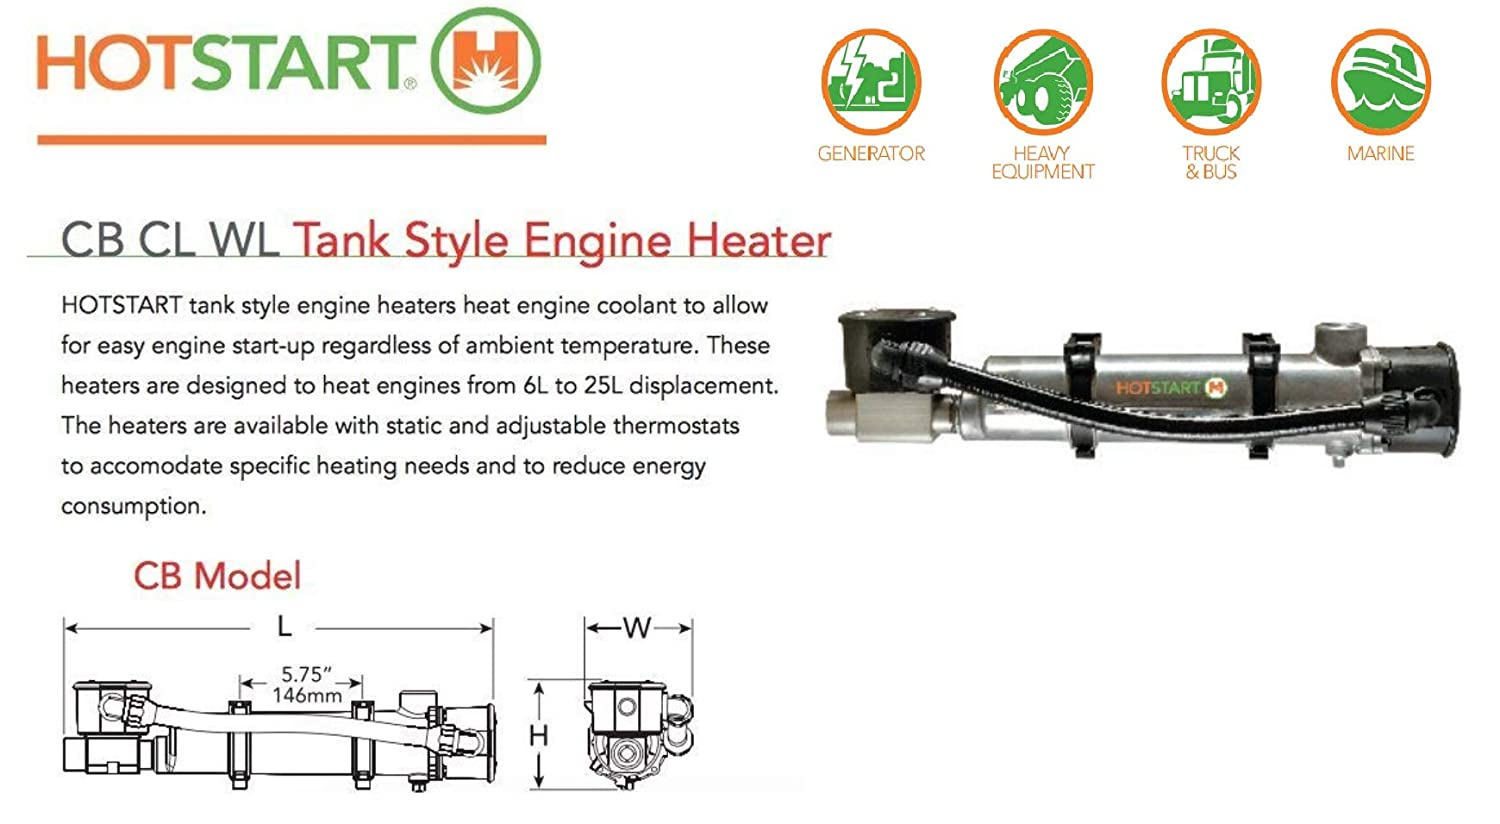 Engine Pre Heater Hotstart Cb115700 000 Original 1 2 5l Diagram Year Warranty Garden Outdoor